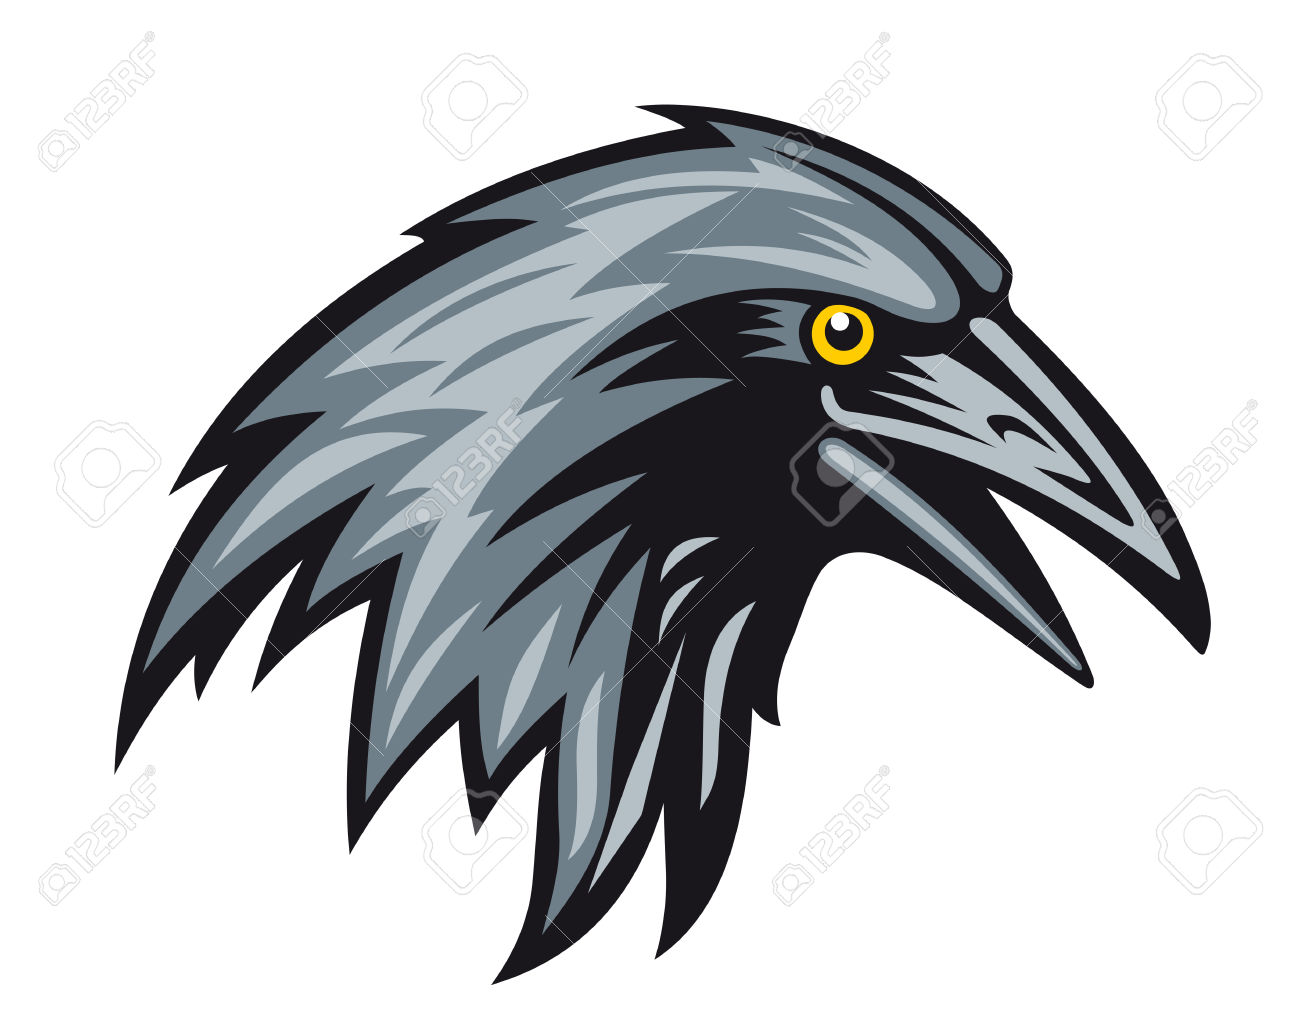 7,184 Raven Stock Vector Illustration And Royalty Free Raven Clipart.